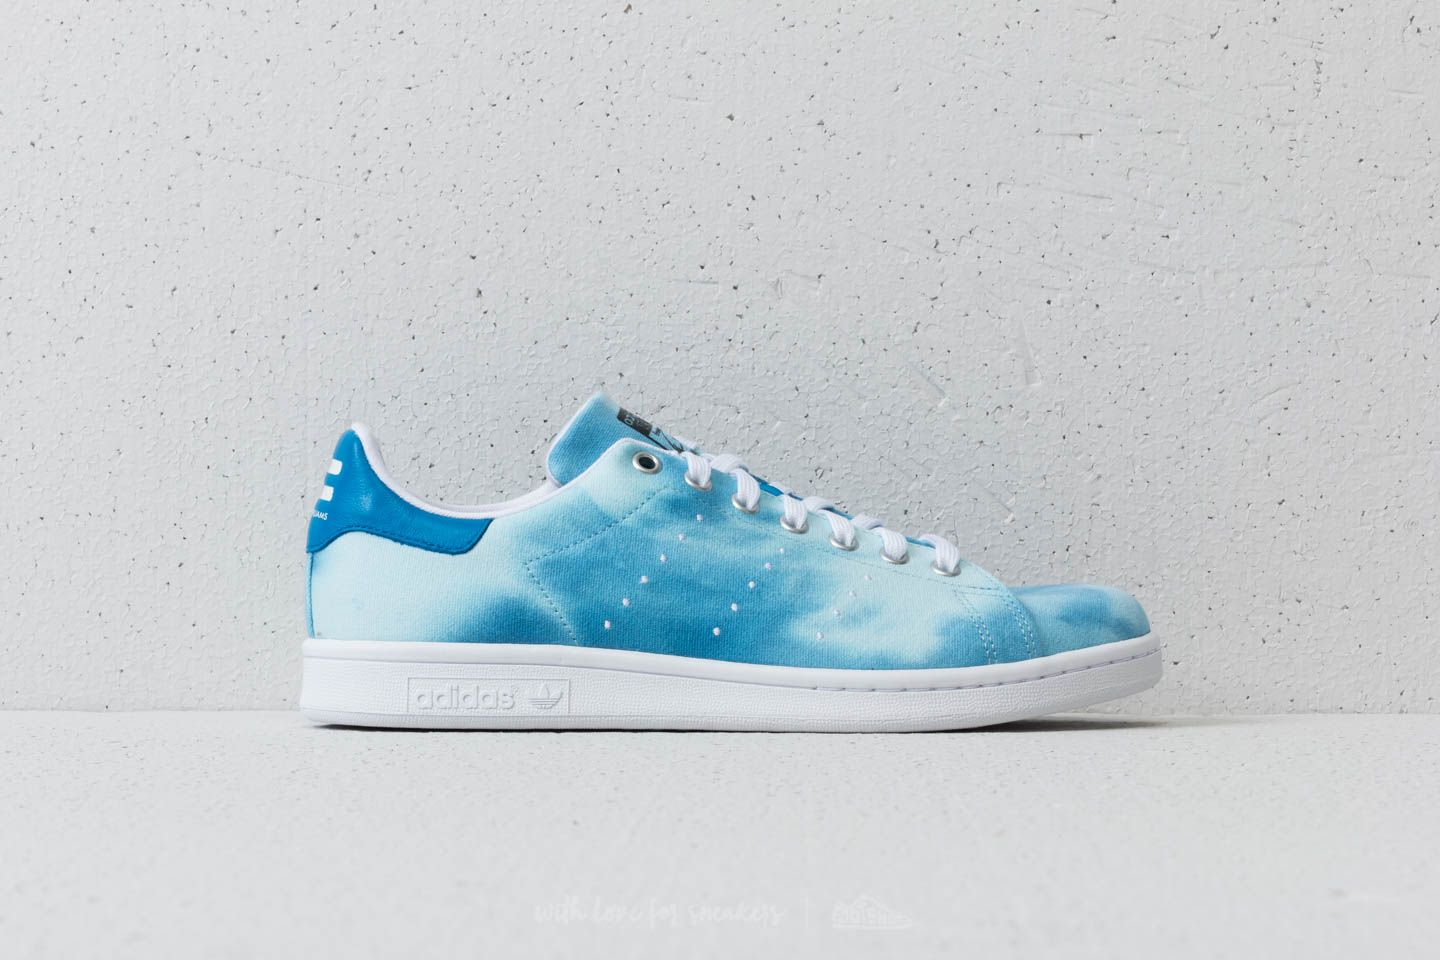 1339e4a2b adidas x Pharrell Williams HU Holi Stan Smith Ftw White  Ftw White  Blue at